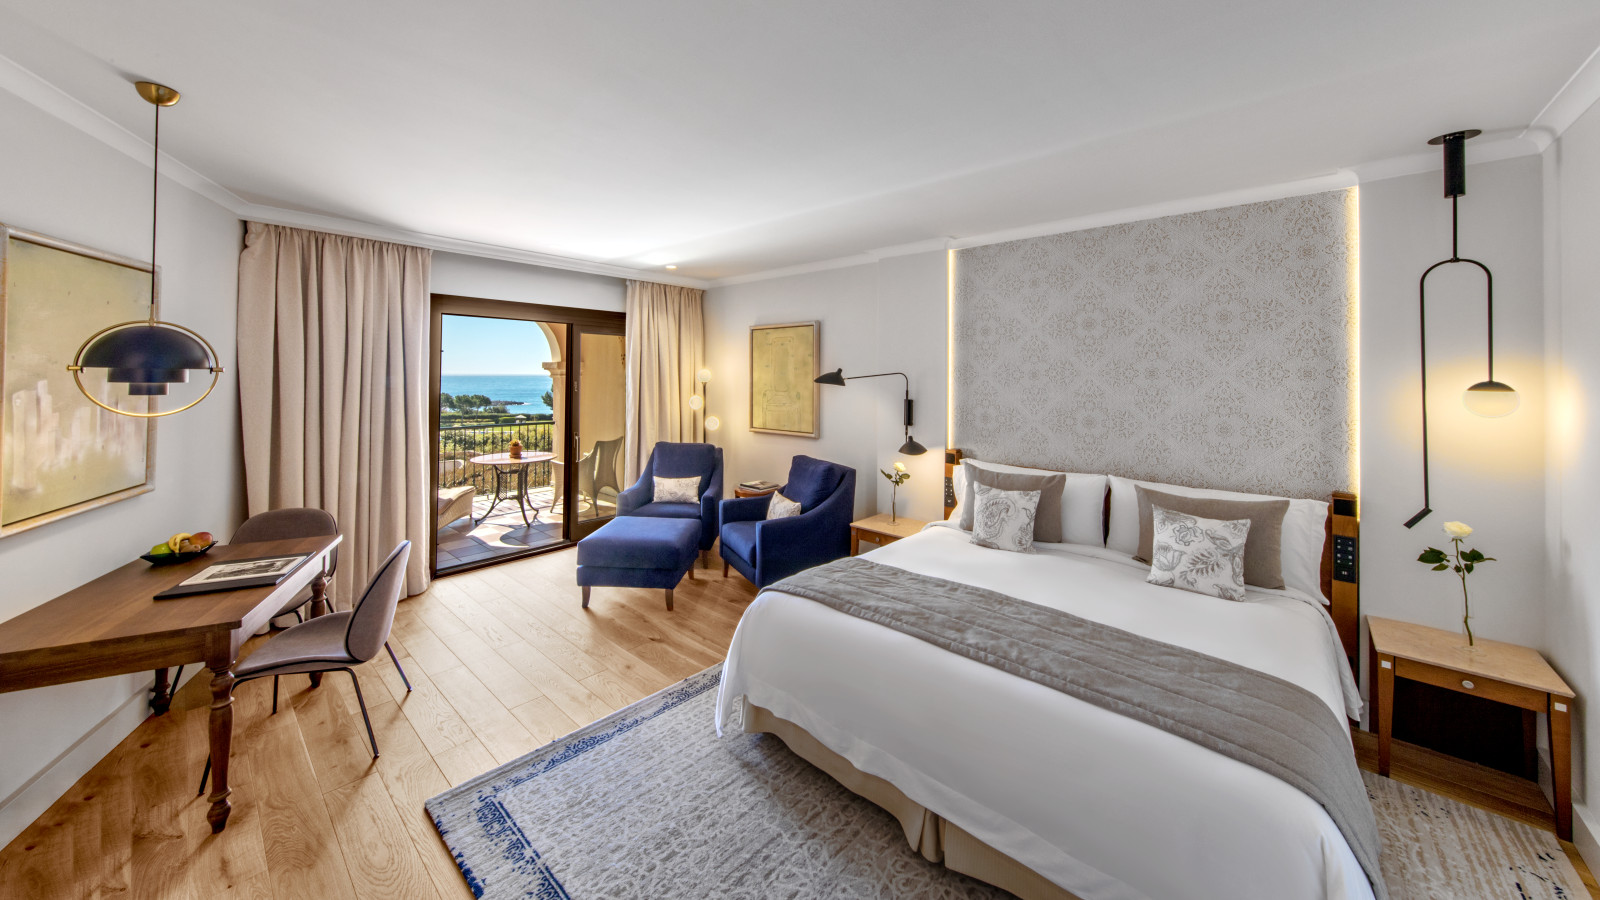 New Grand Deluxe Room with Sea View at the luxury Resort St. Regis Mardavall Mallorca Resort